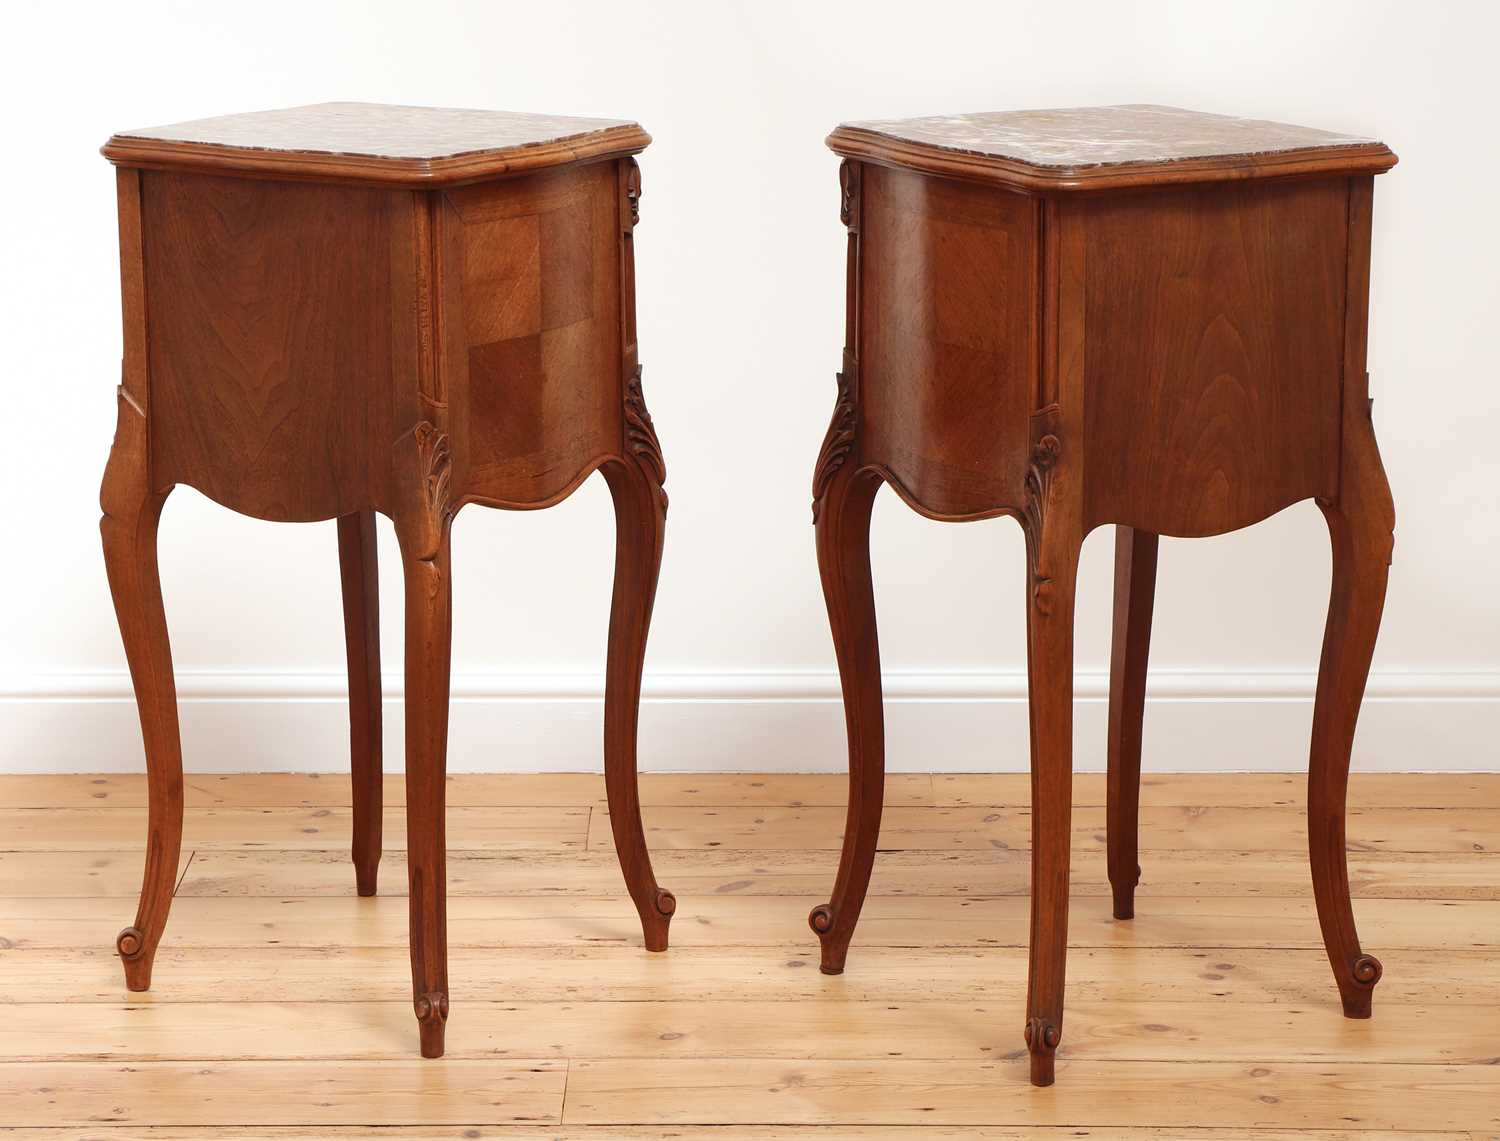 A pair of French Louis XV-style walnut bedside cabinets - Image 2 of 5